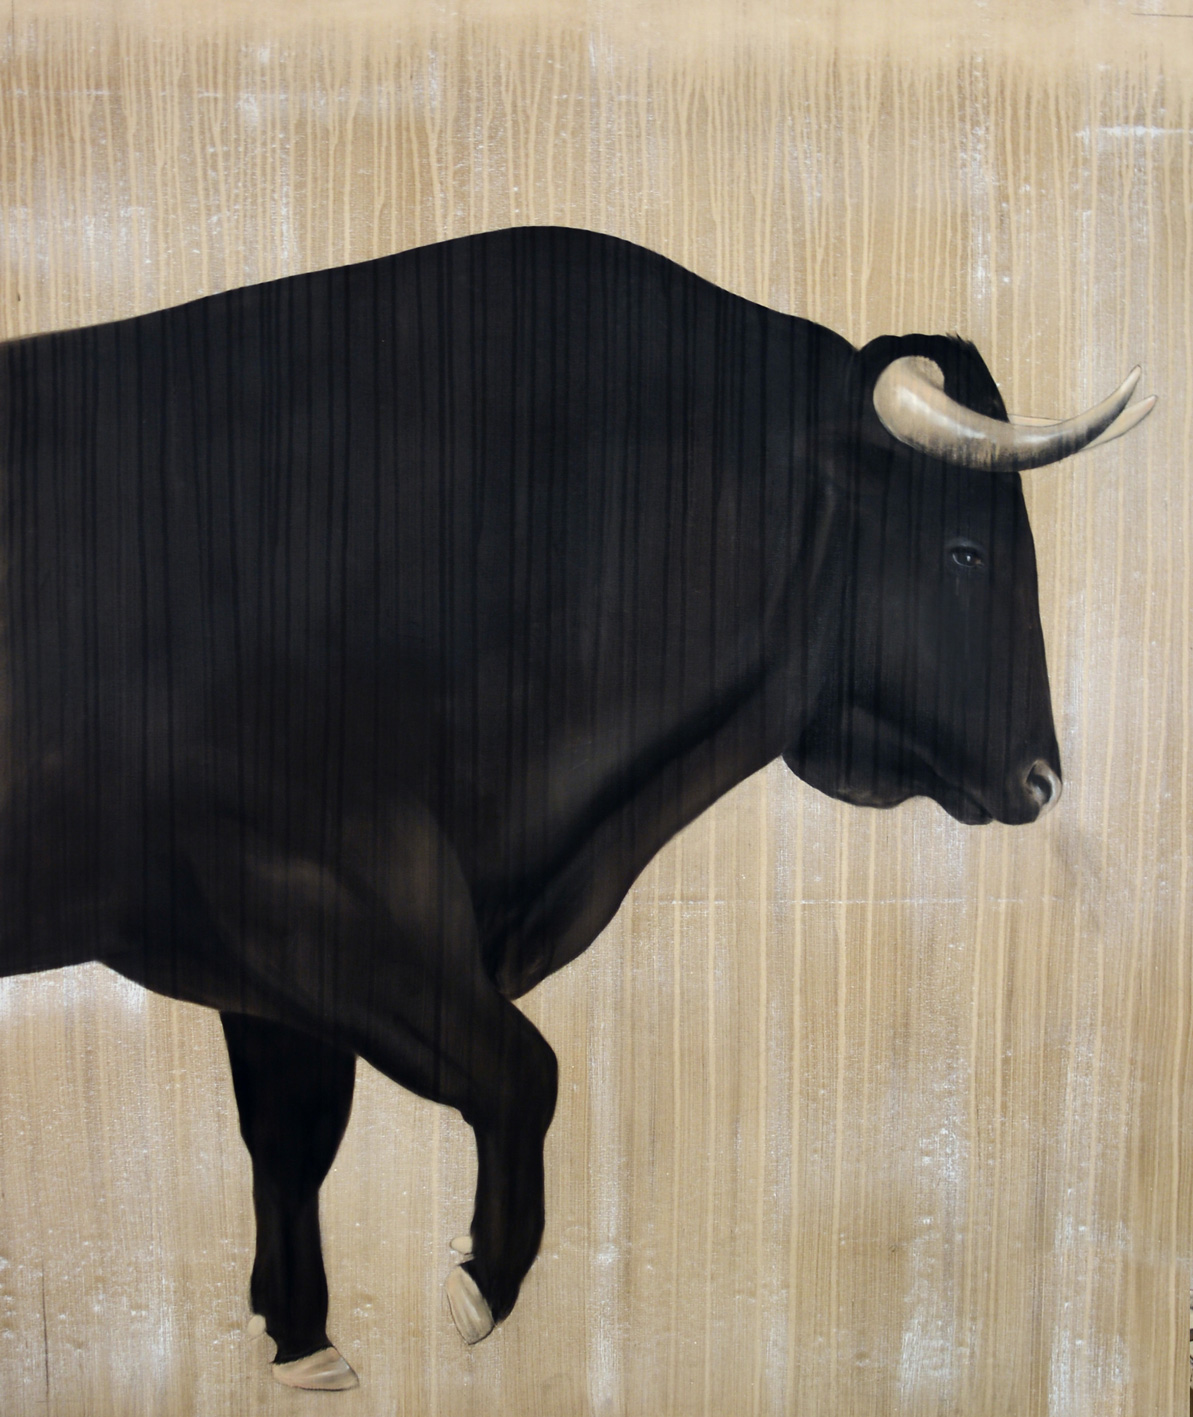 MIURA bull-fighting Animal painting by Thierry Bisch pets wildlife artist painter canvas art decoration